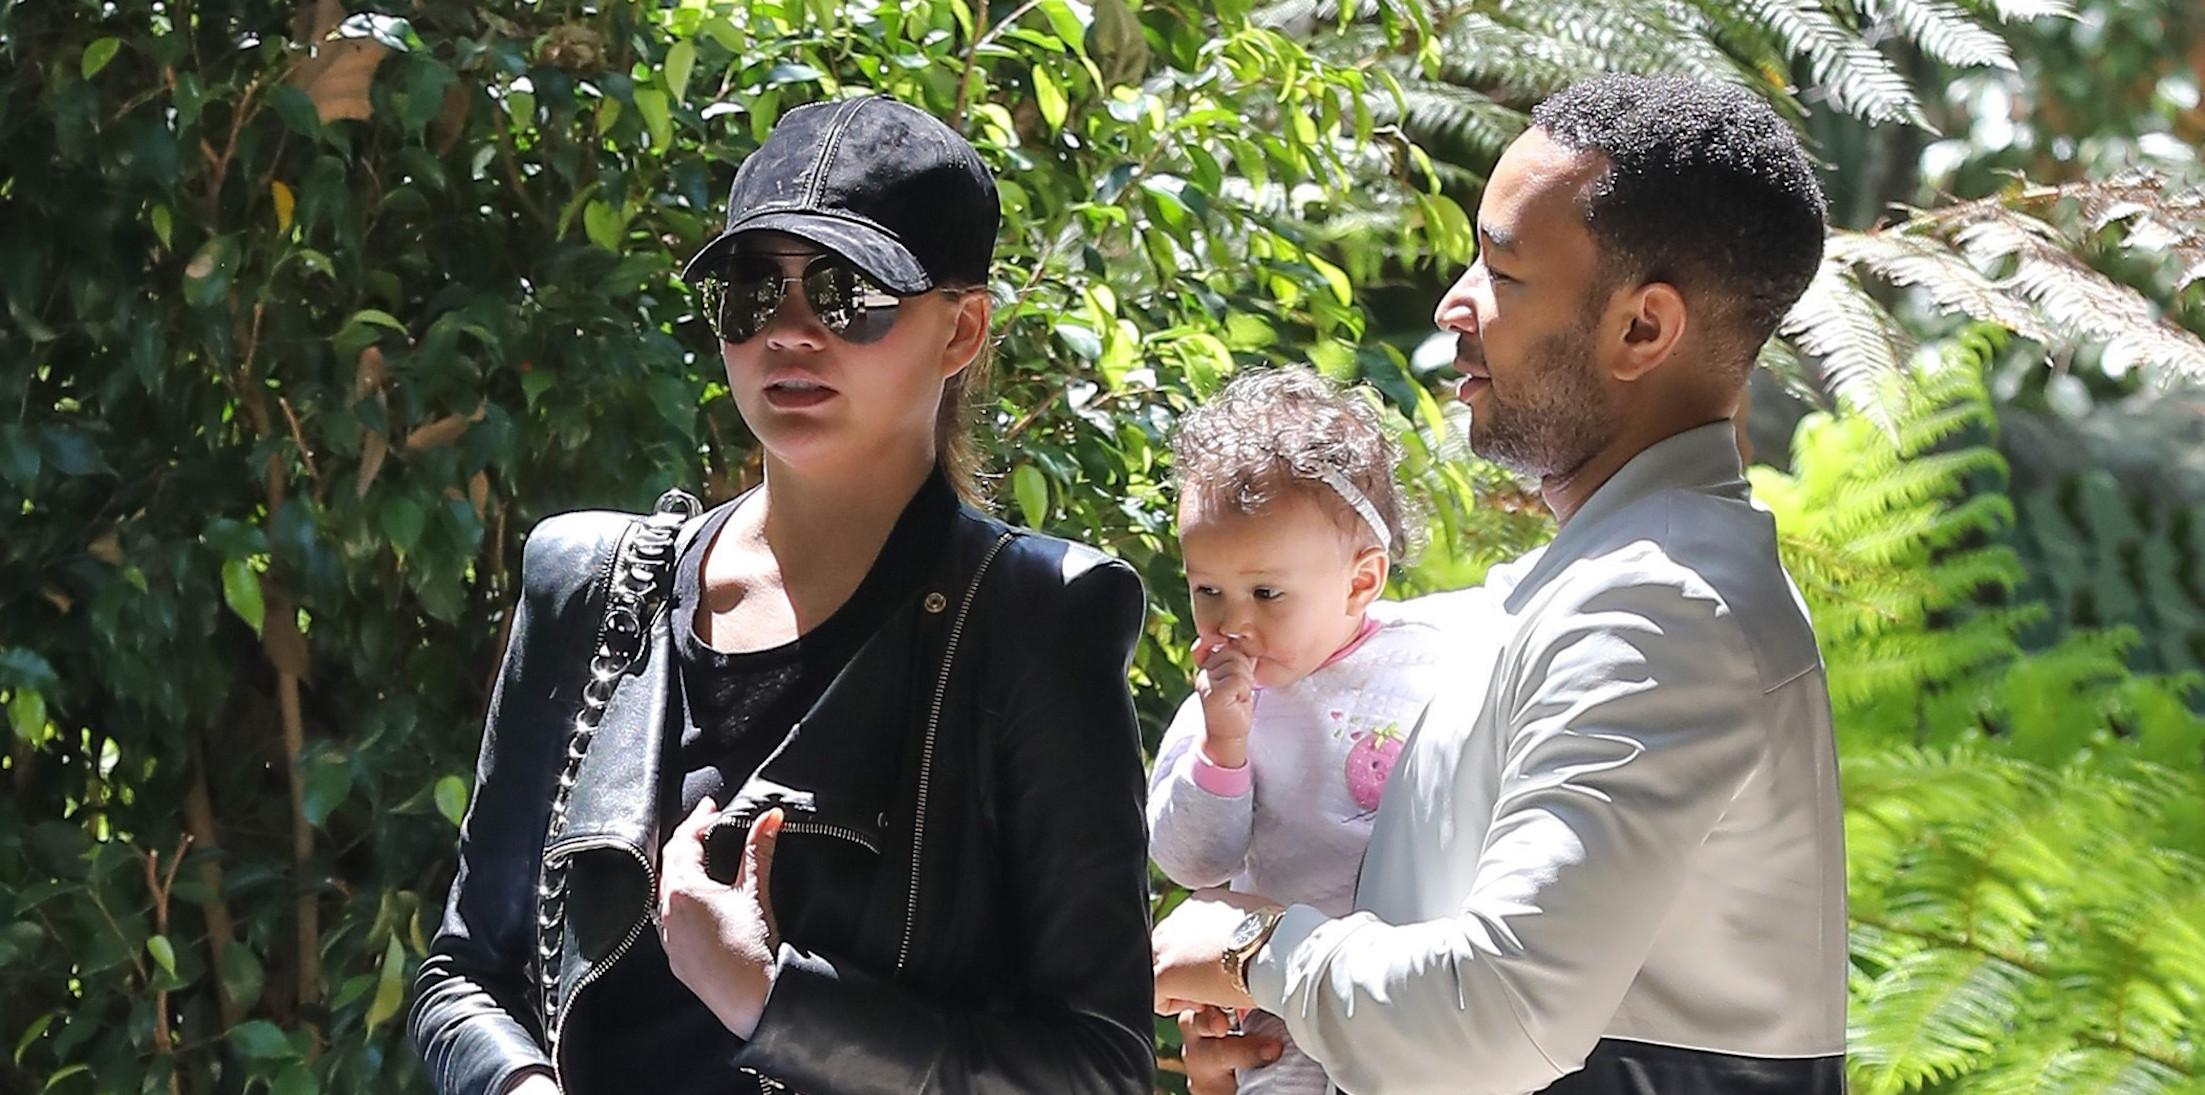 Chrissy Teigen and John Legend grab lunch at the Bel Air Hotel